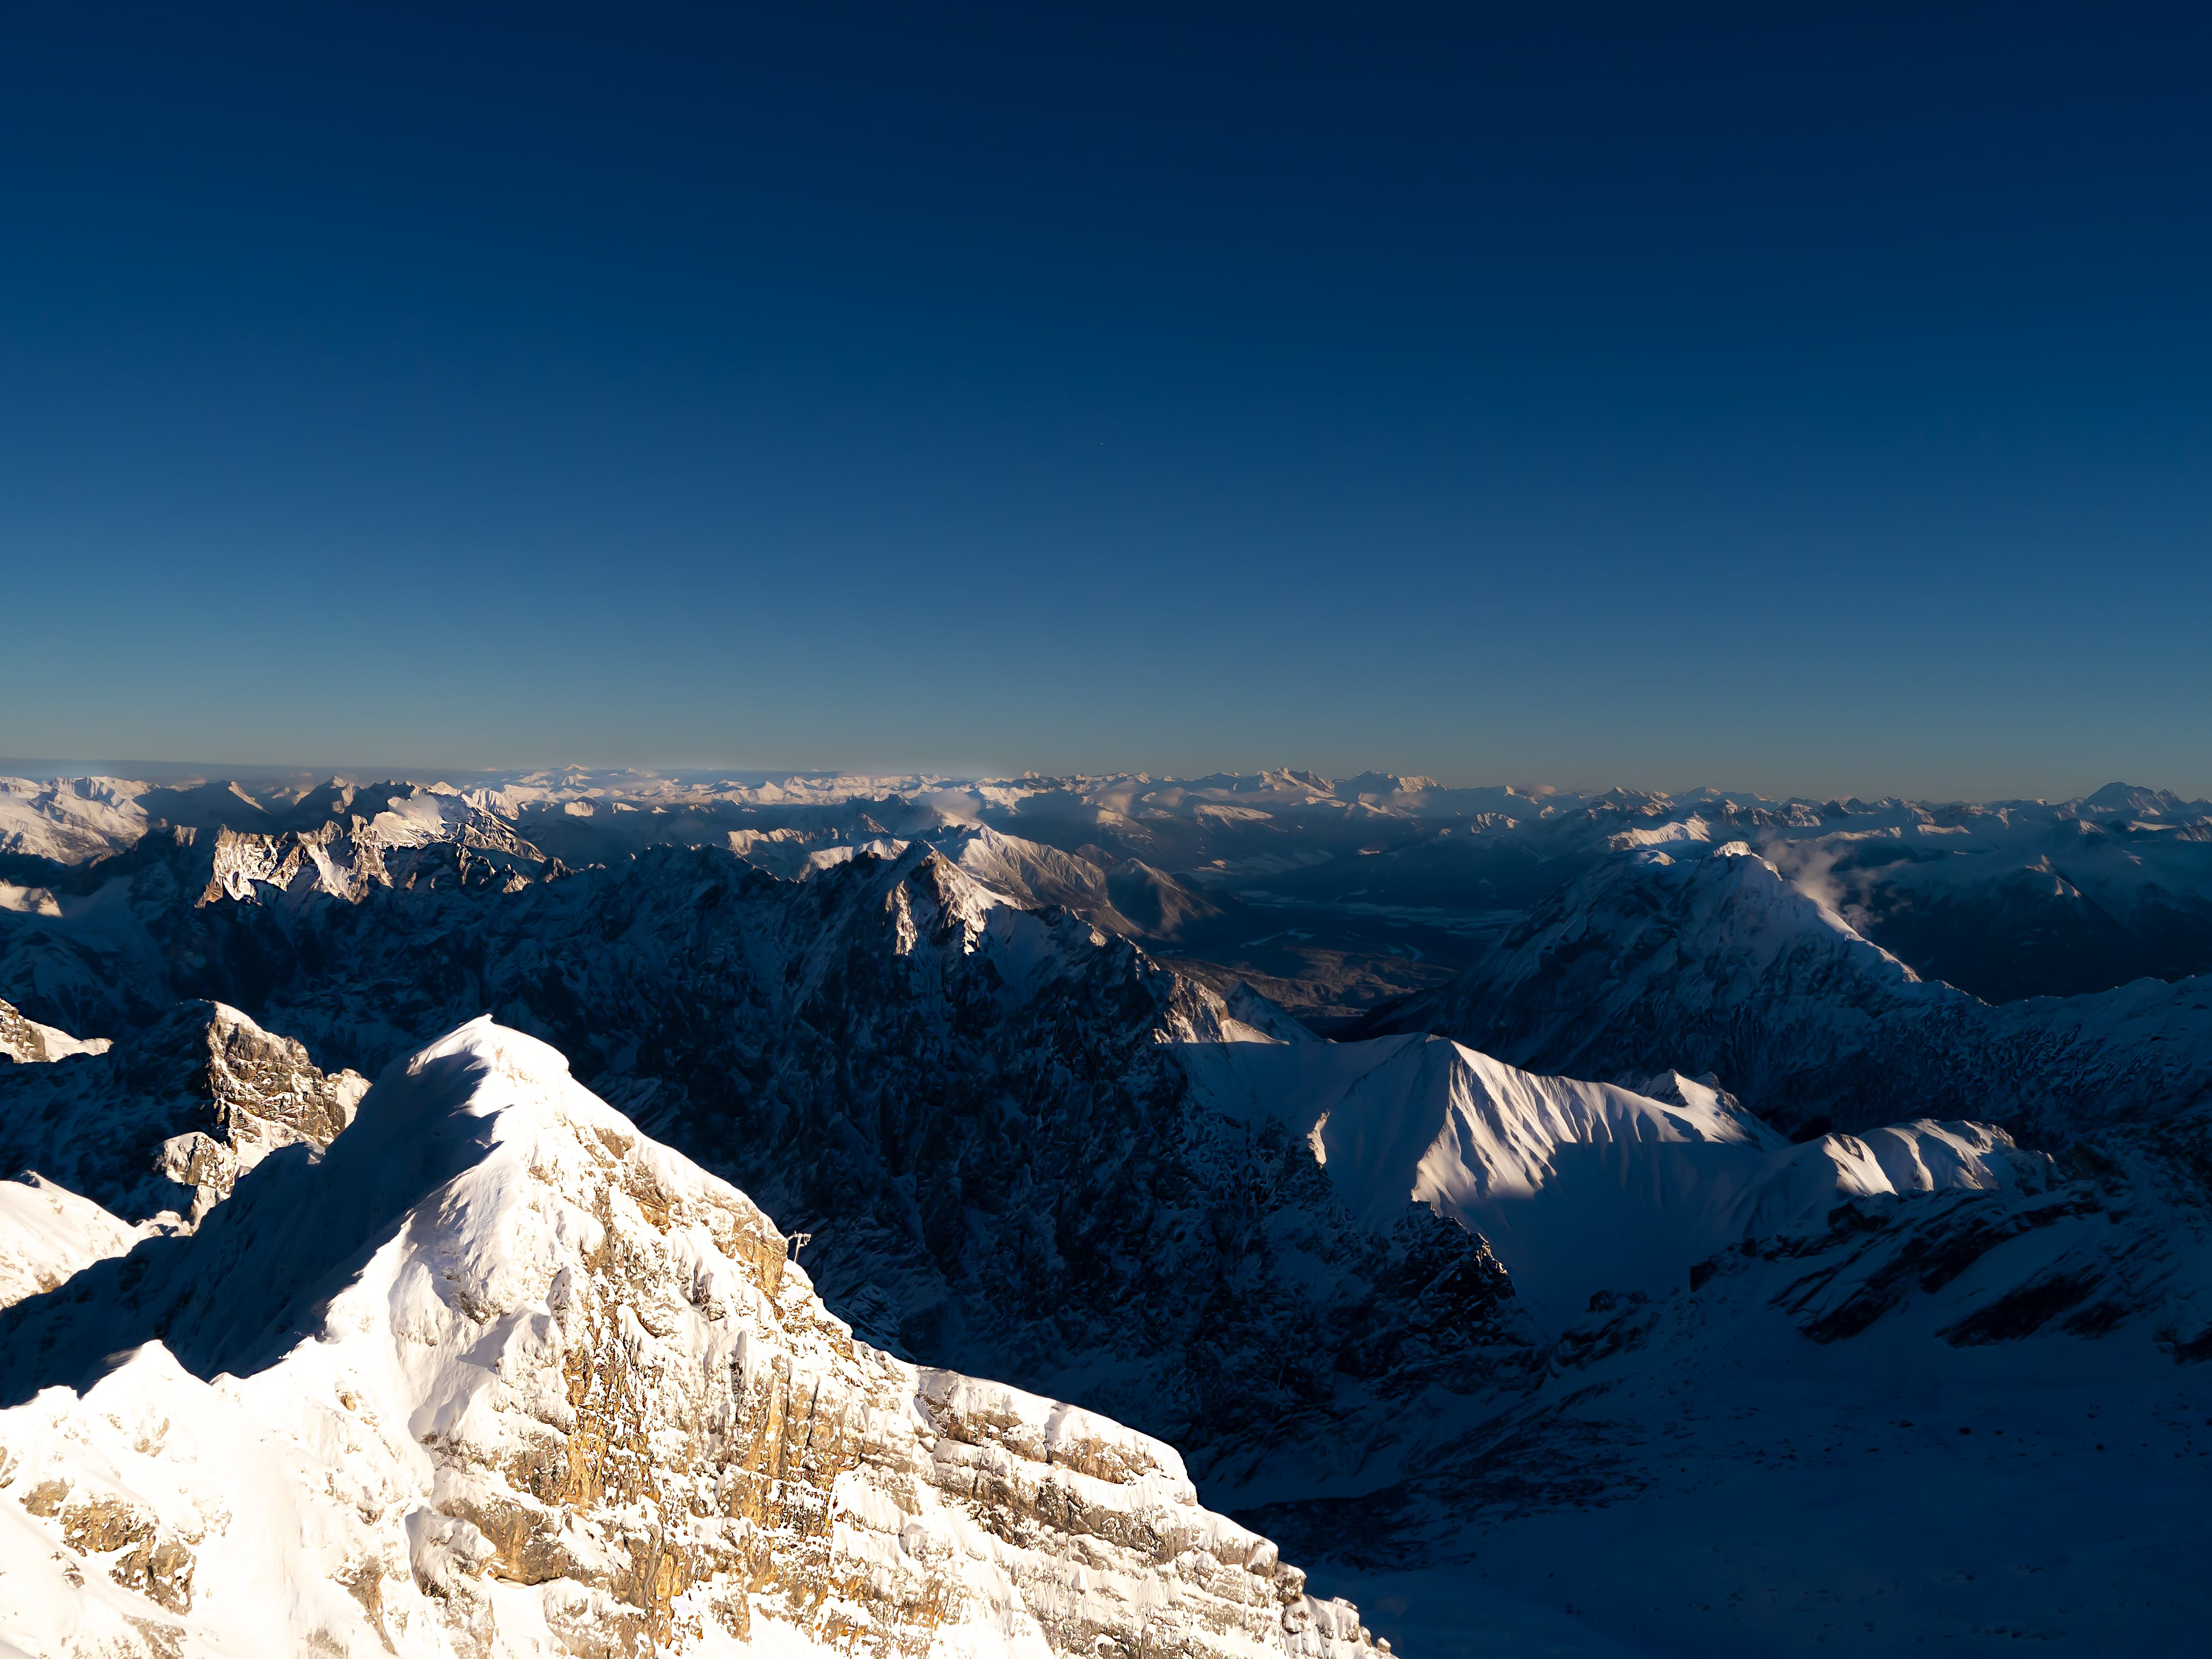 Aerial Photography of Snow Capped Mountains